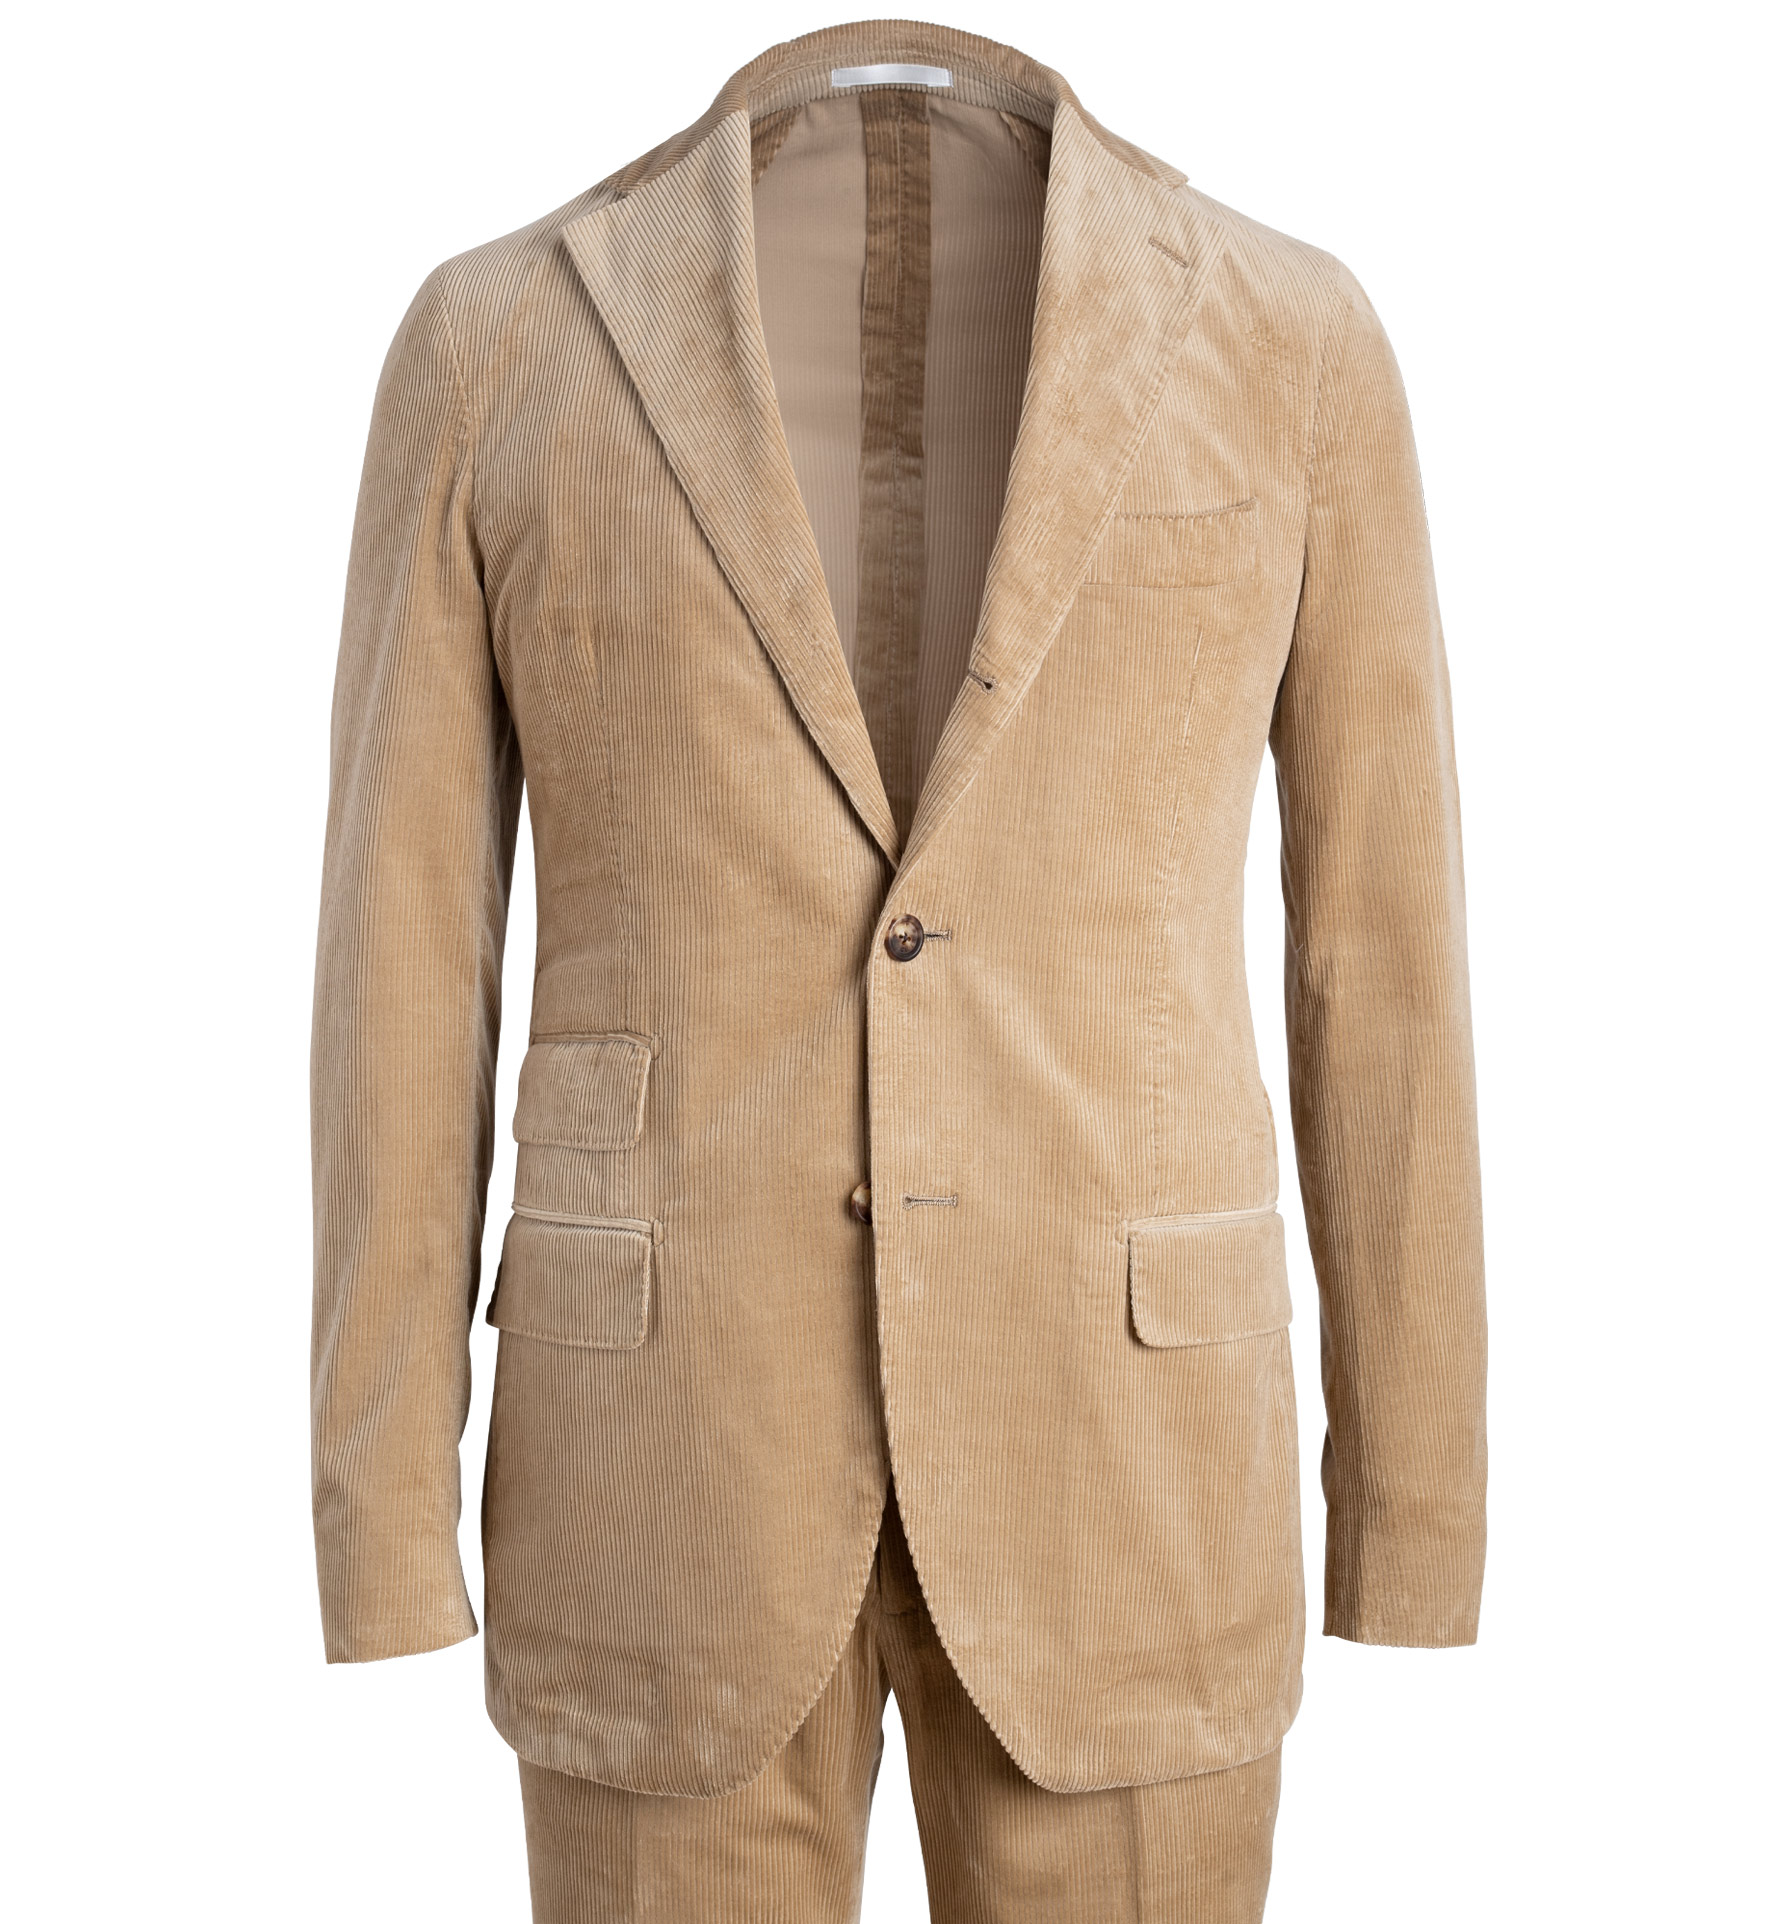 Zoom Image of Waverly Camel Lightweight Supima Corduroy Suit